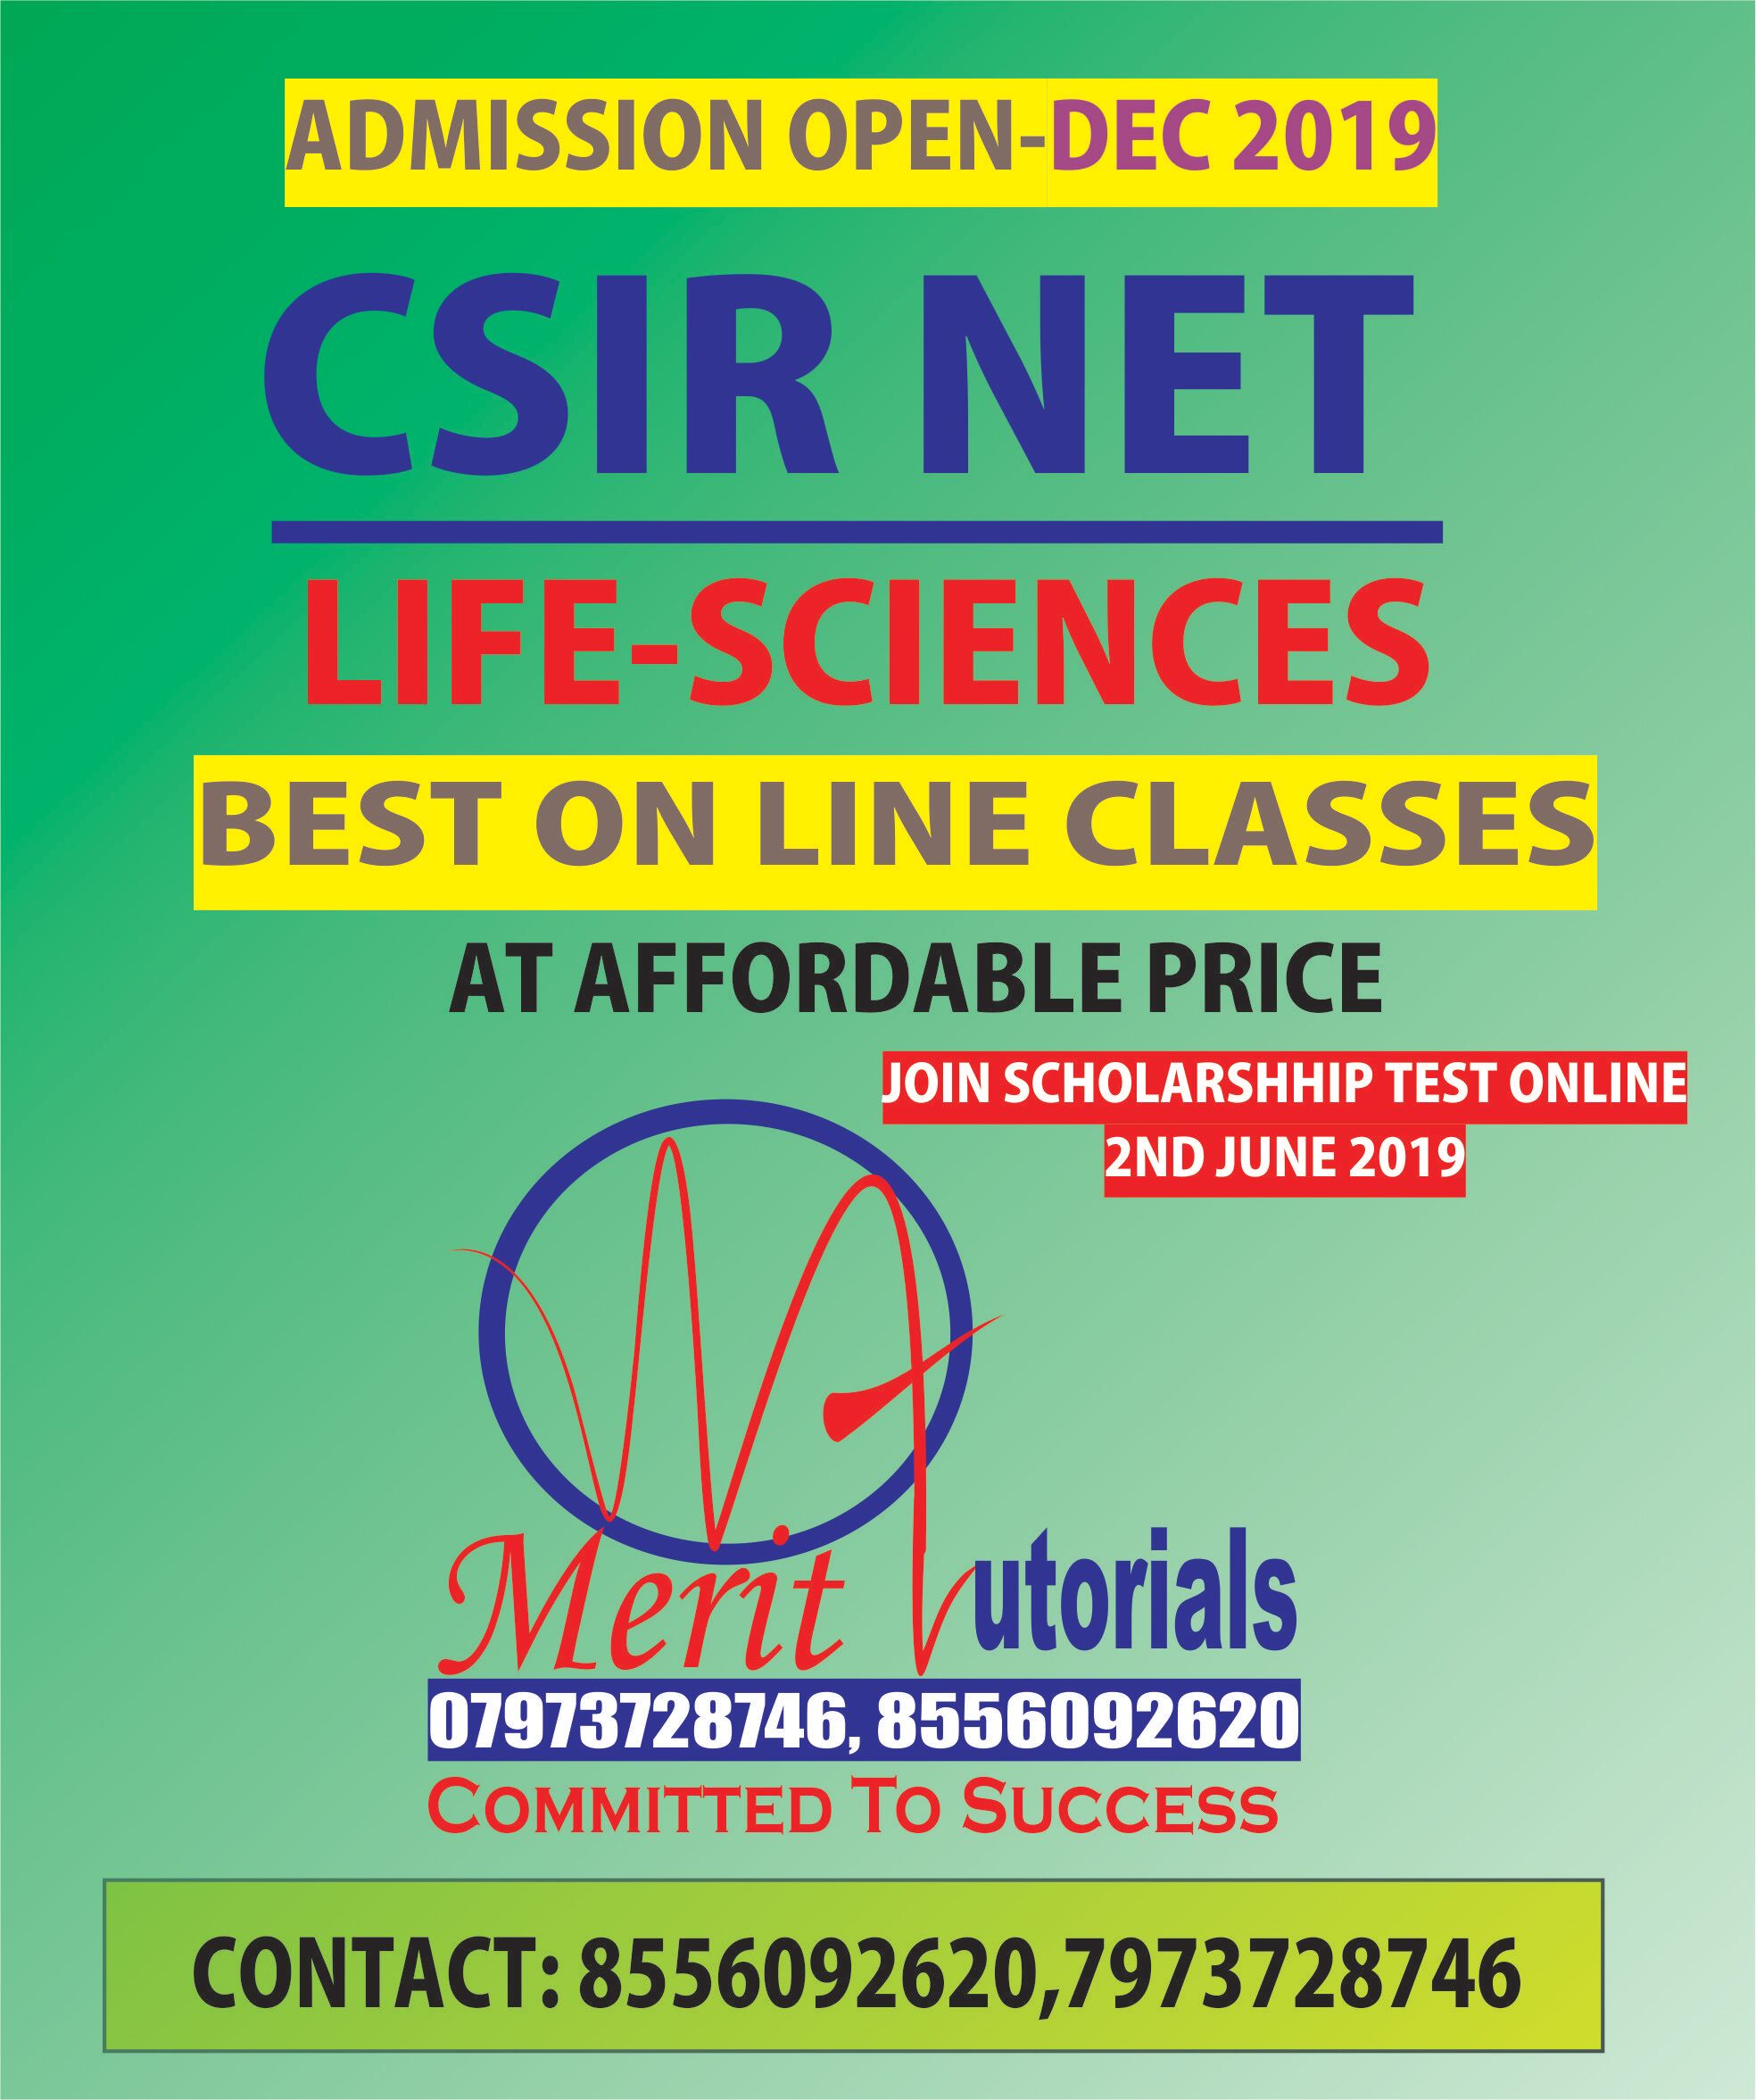 CSIR NET | GATE LIFE SCIENCES BUY VIDOE LECTURE WITH WEEKLY DOUBT CLEARING  SESSIONS -SELF PACE LEARNING